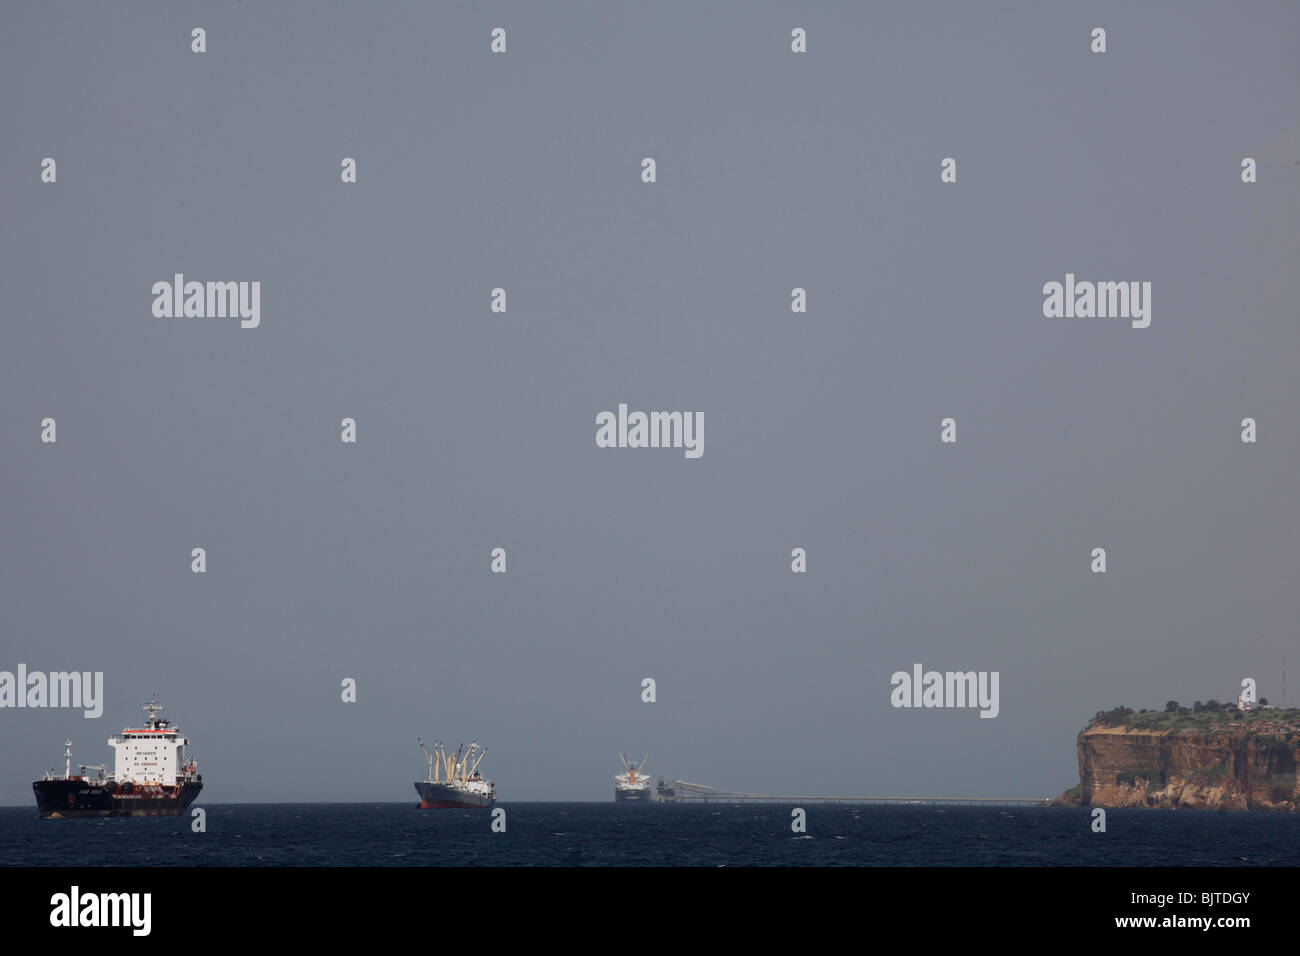 Container ships moored of the coast waiting to dock at Luanda Port. Angola. Africa. - Stock Image